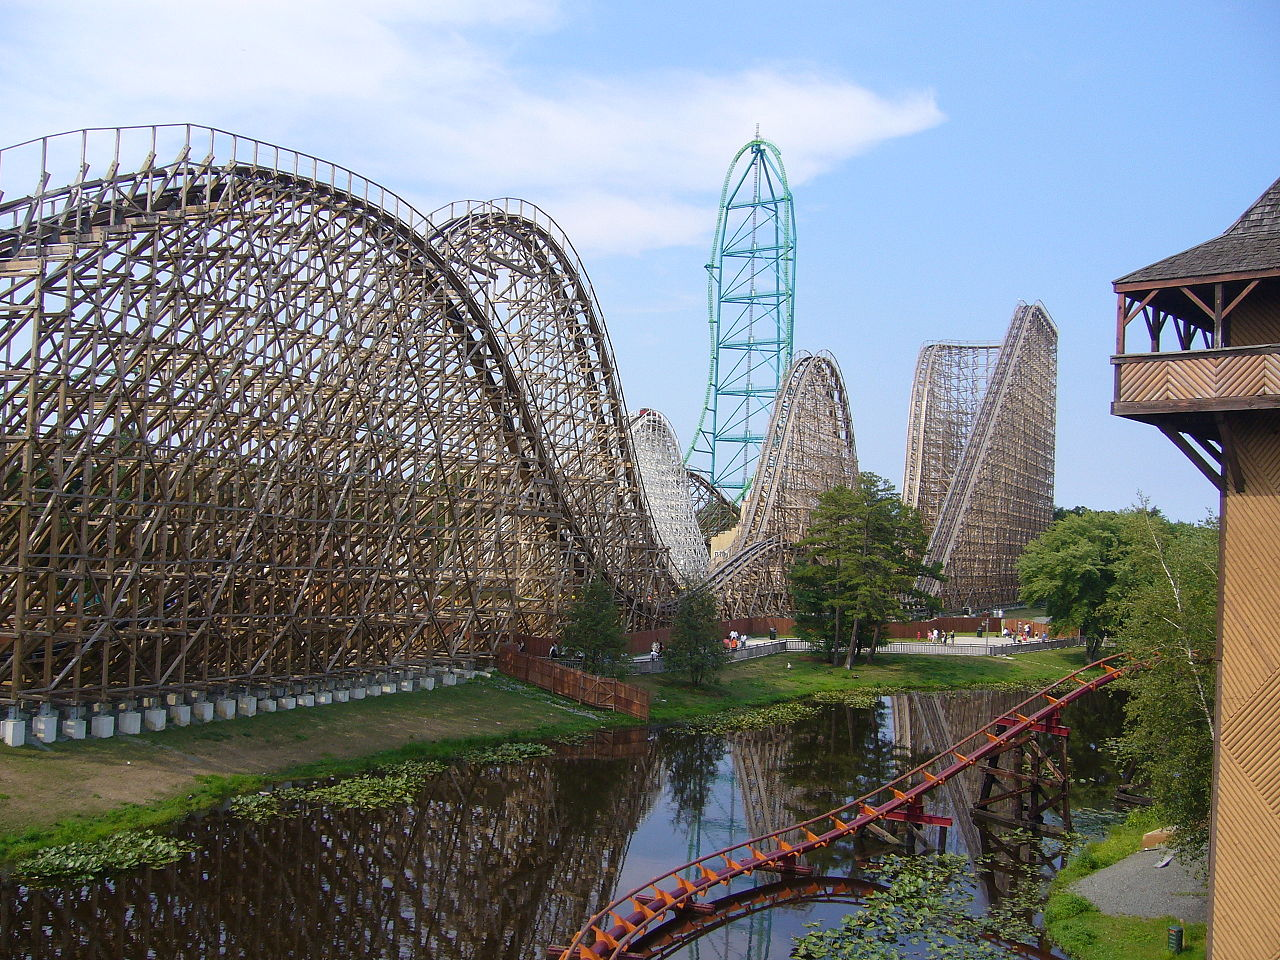 An overview of El Toro at Six Flags Great Adventure